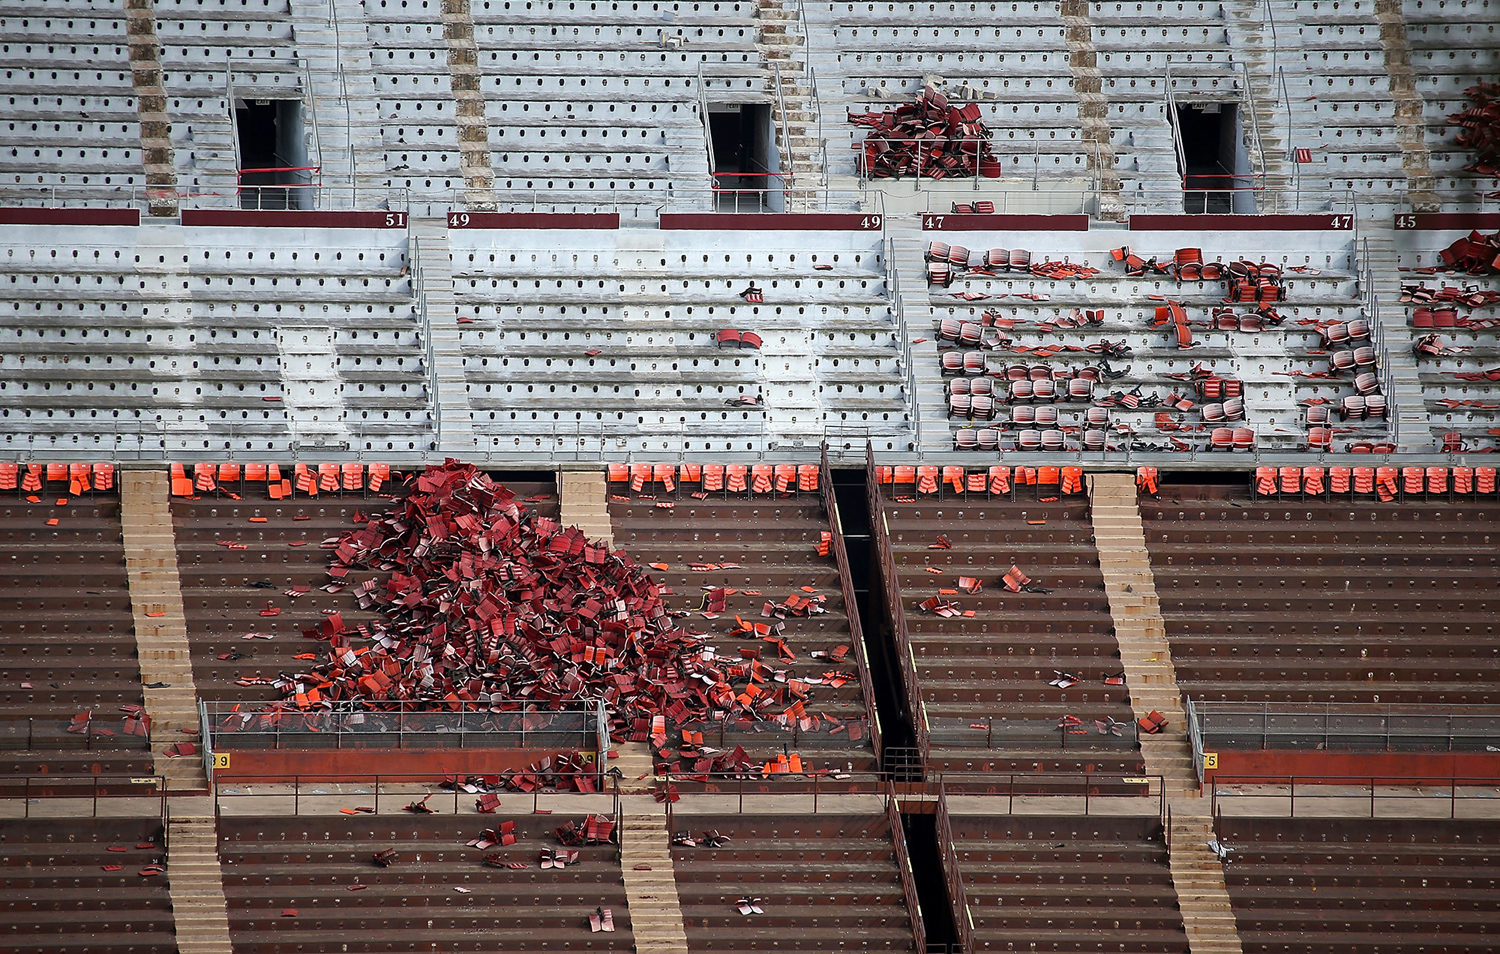 A pile of torn-out stadium seats sits in an empty section inside Candlestick Park on February 4, 2015, during demolition.